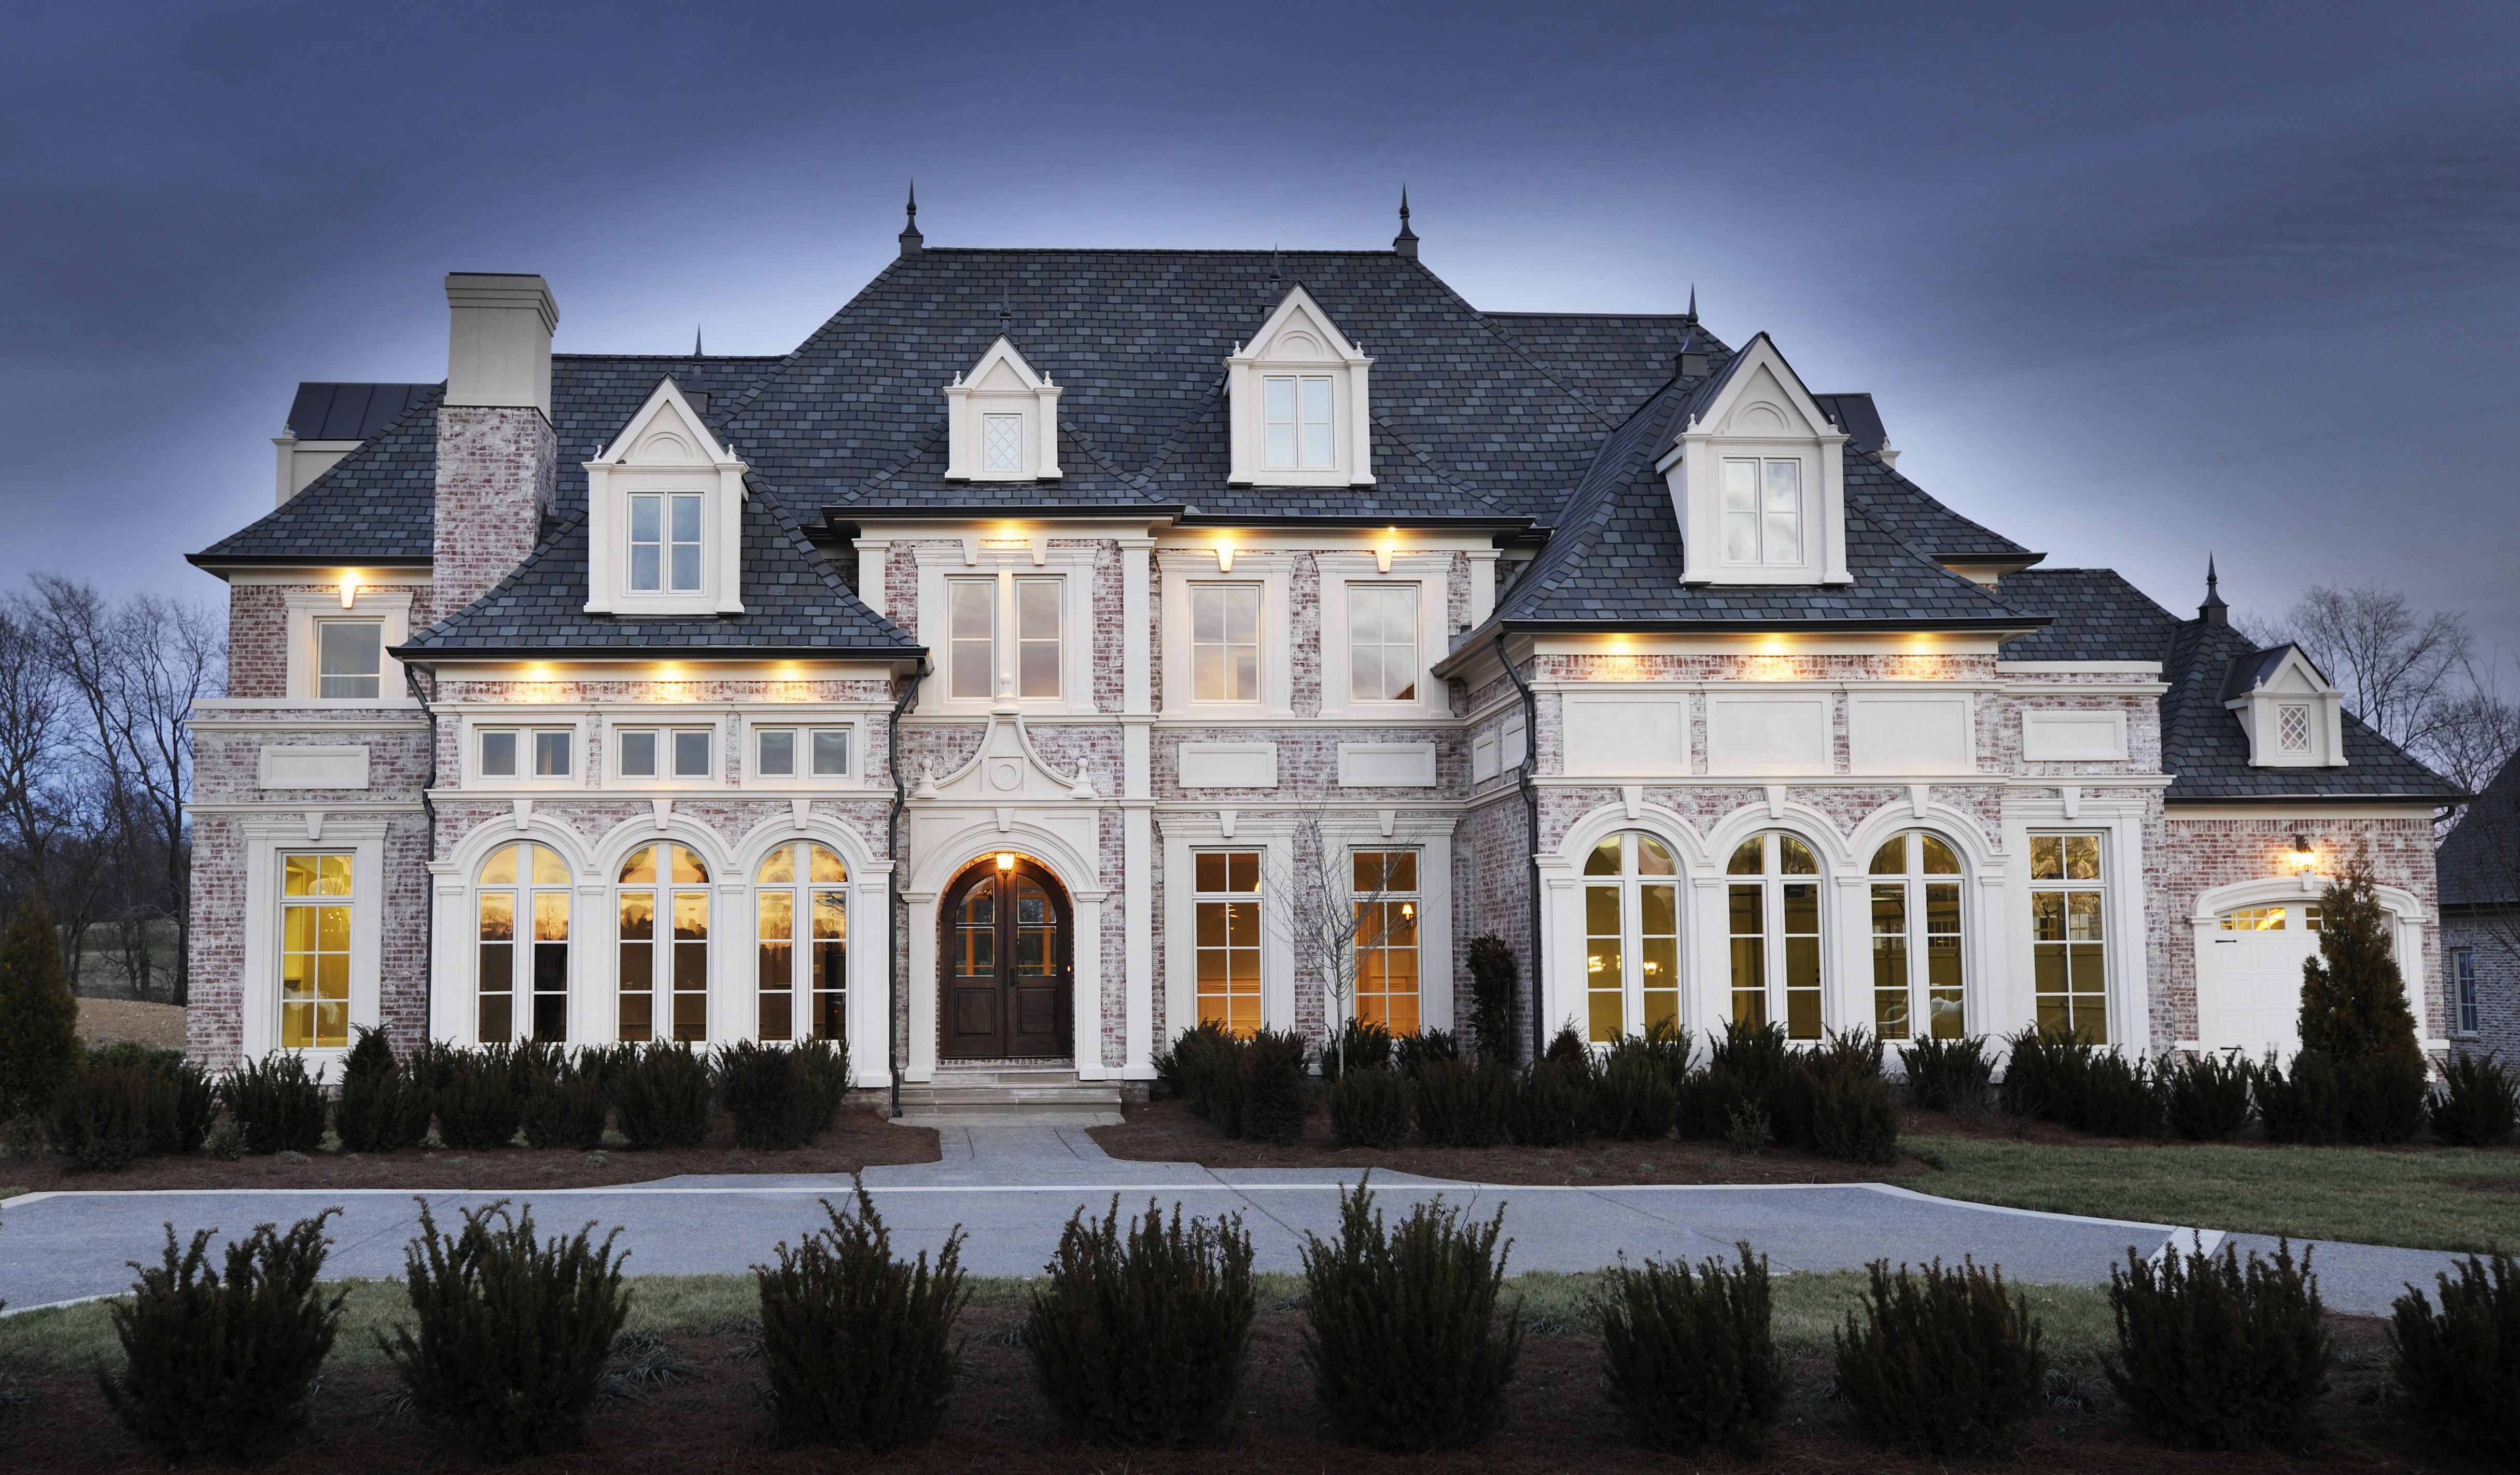 Grove Park Home Luxury Homes Dream Houses Expensive Houses Mansions